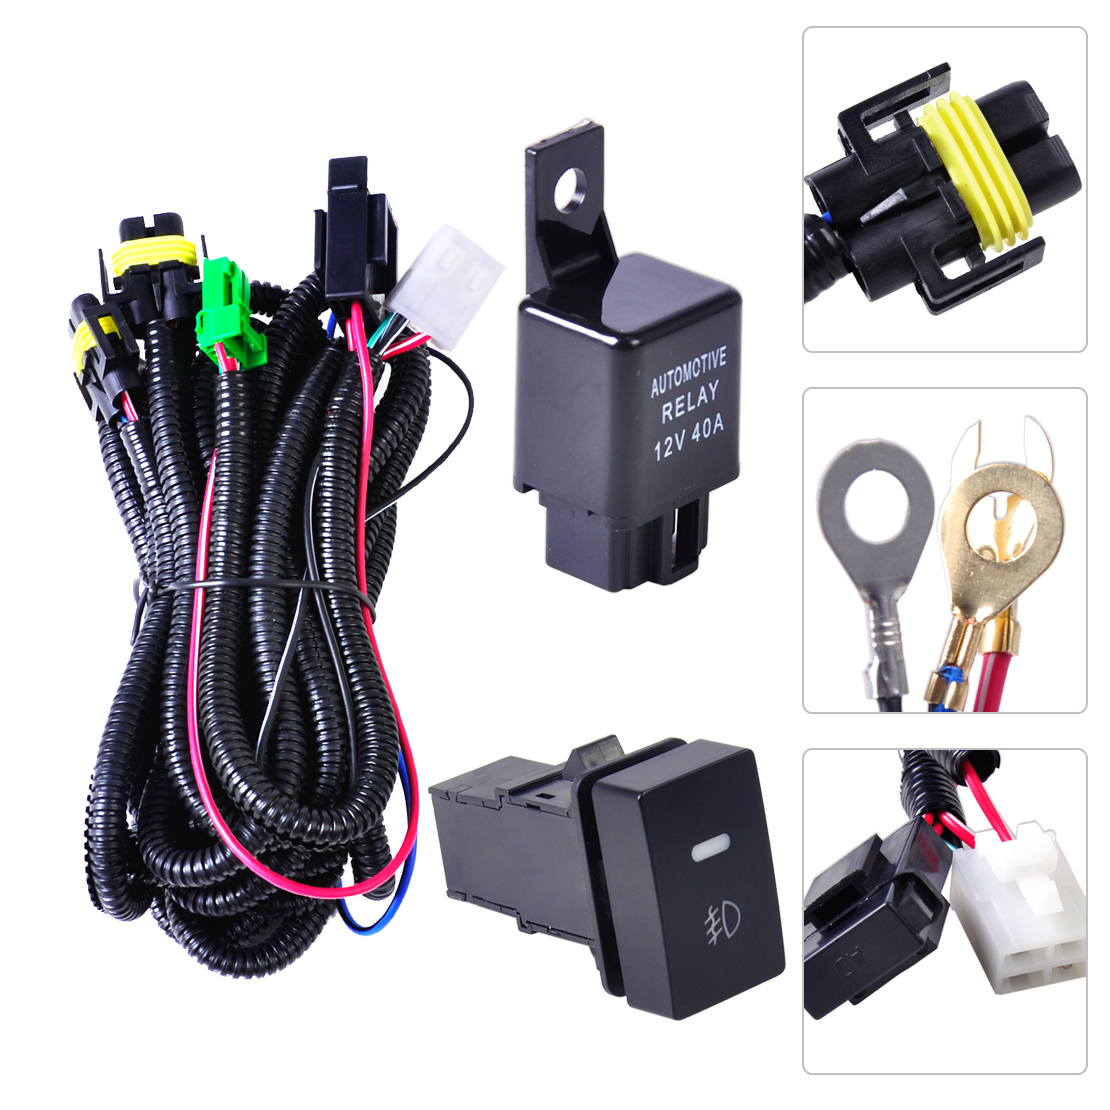 hight resolution of wiring harness sockets connector switch for h11 fog light lamp ford focus nissan ebay